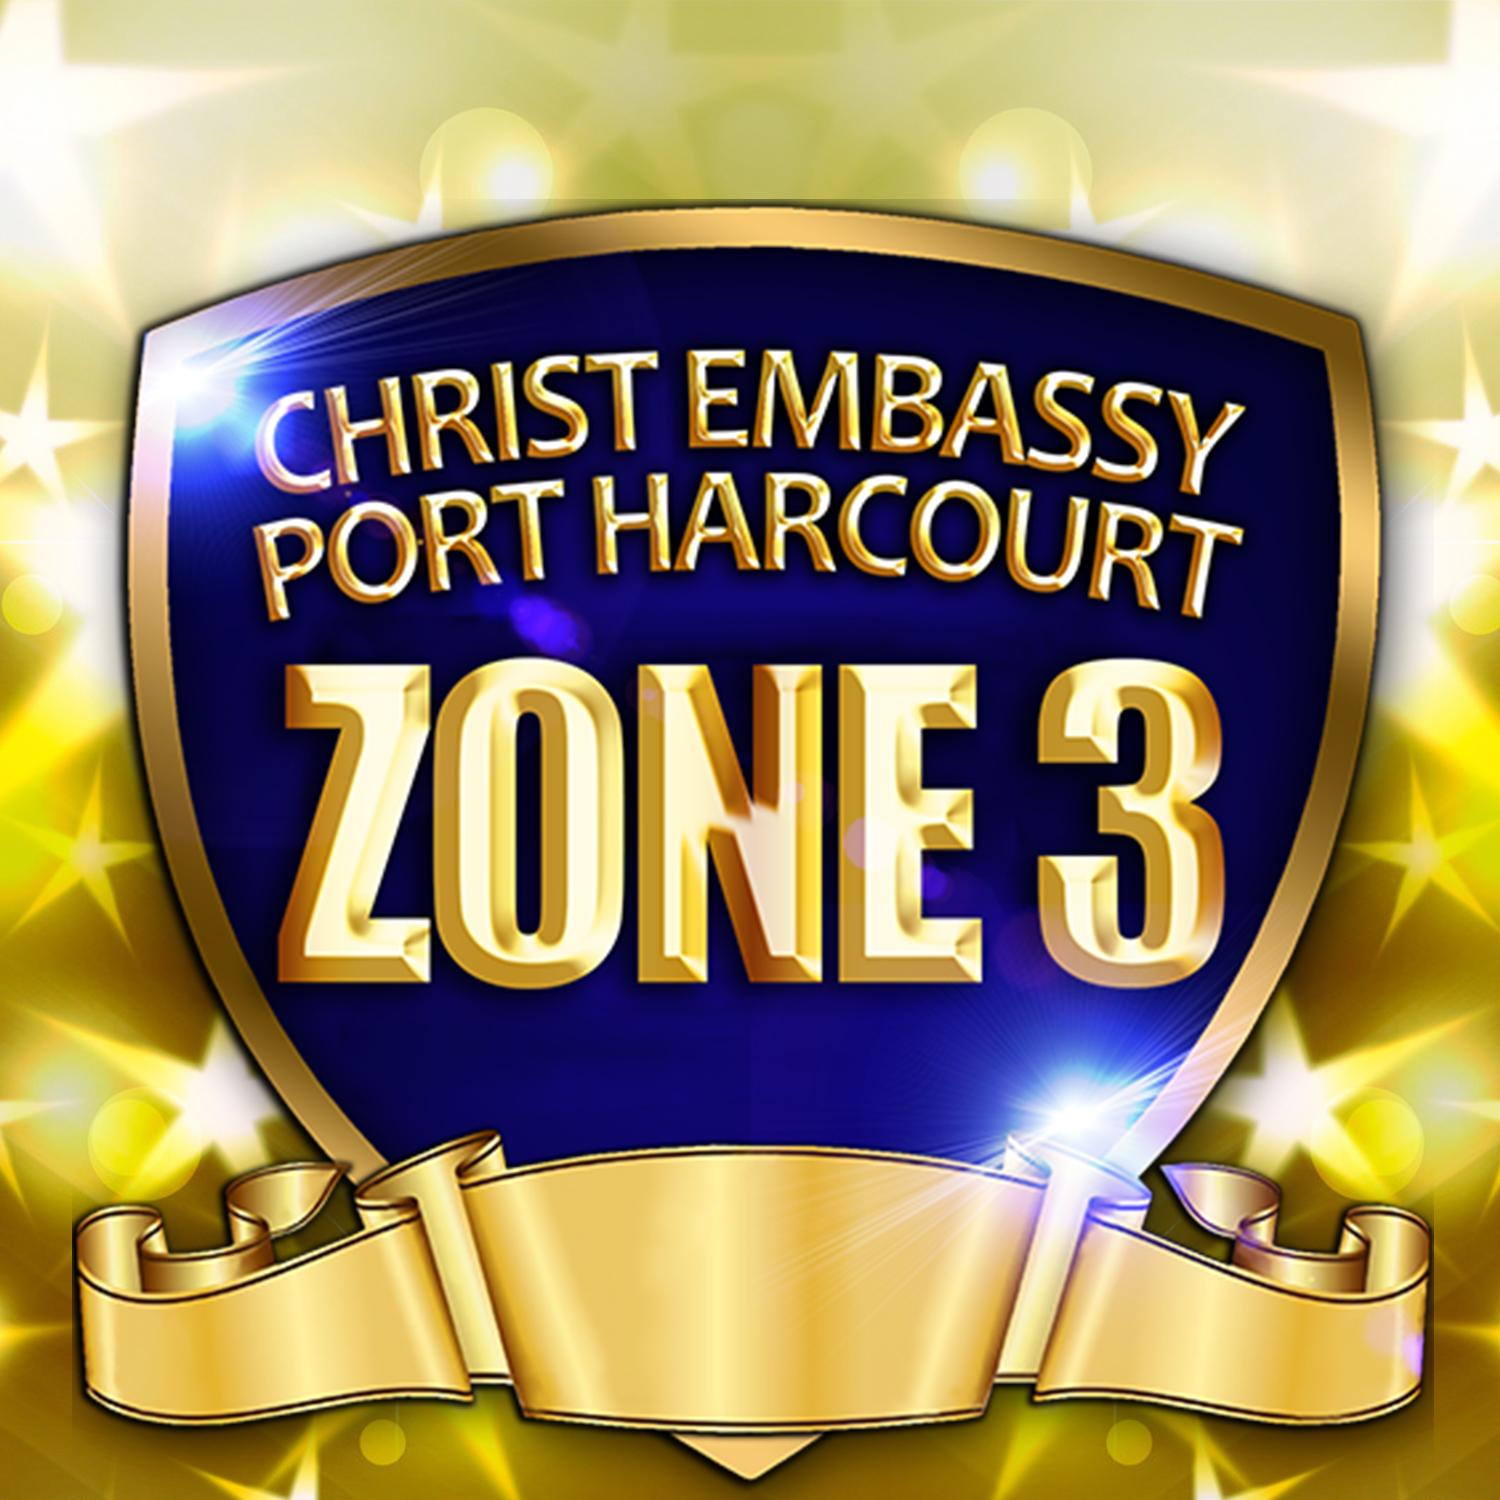 CE Port Harcourt Zone 3 avatar picture